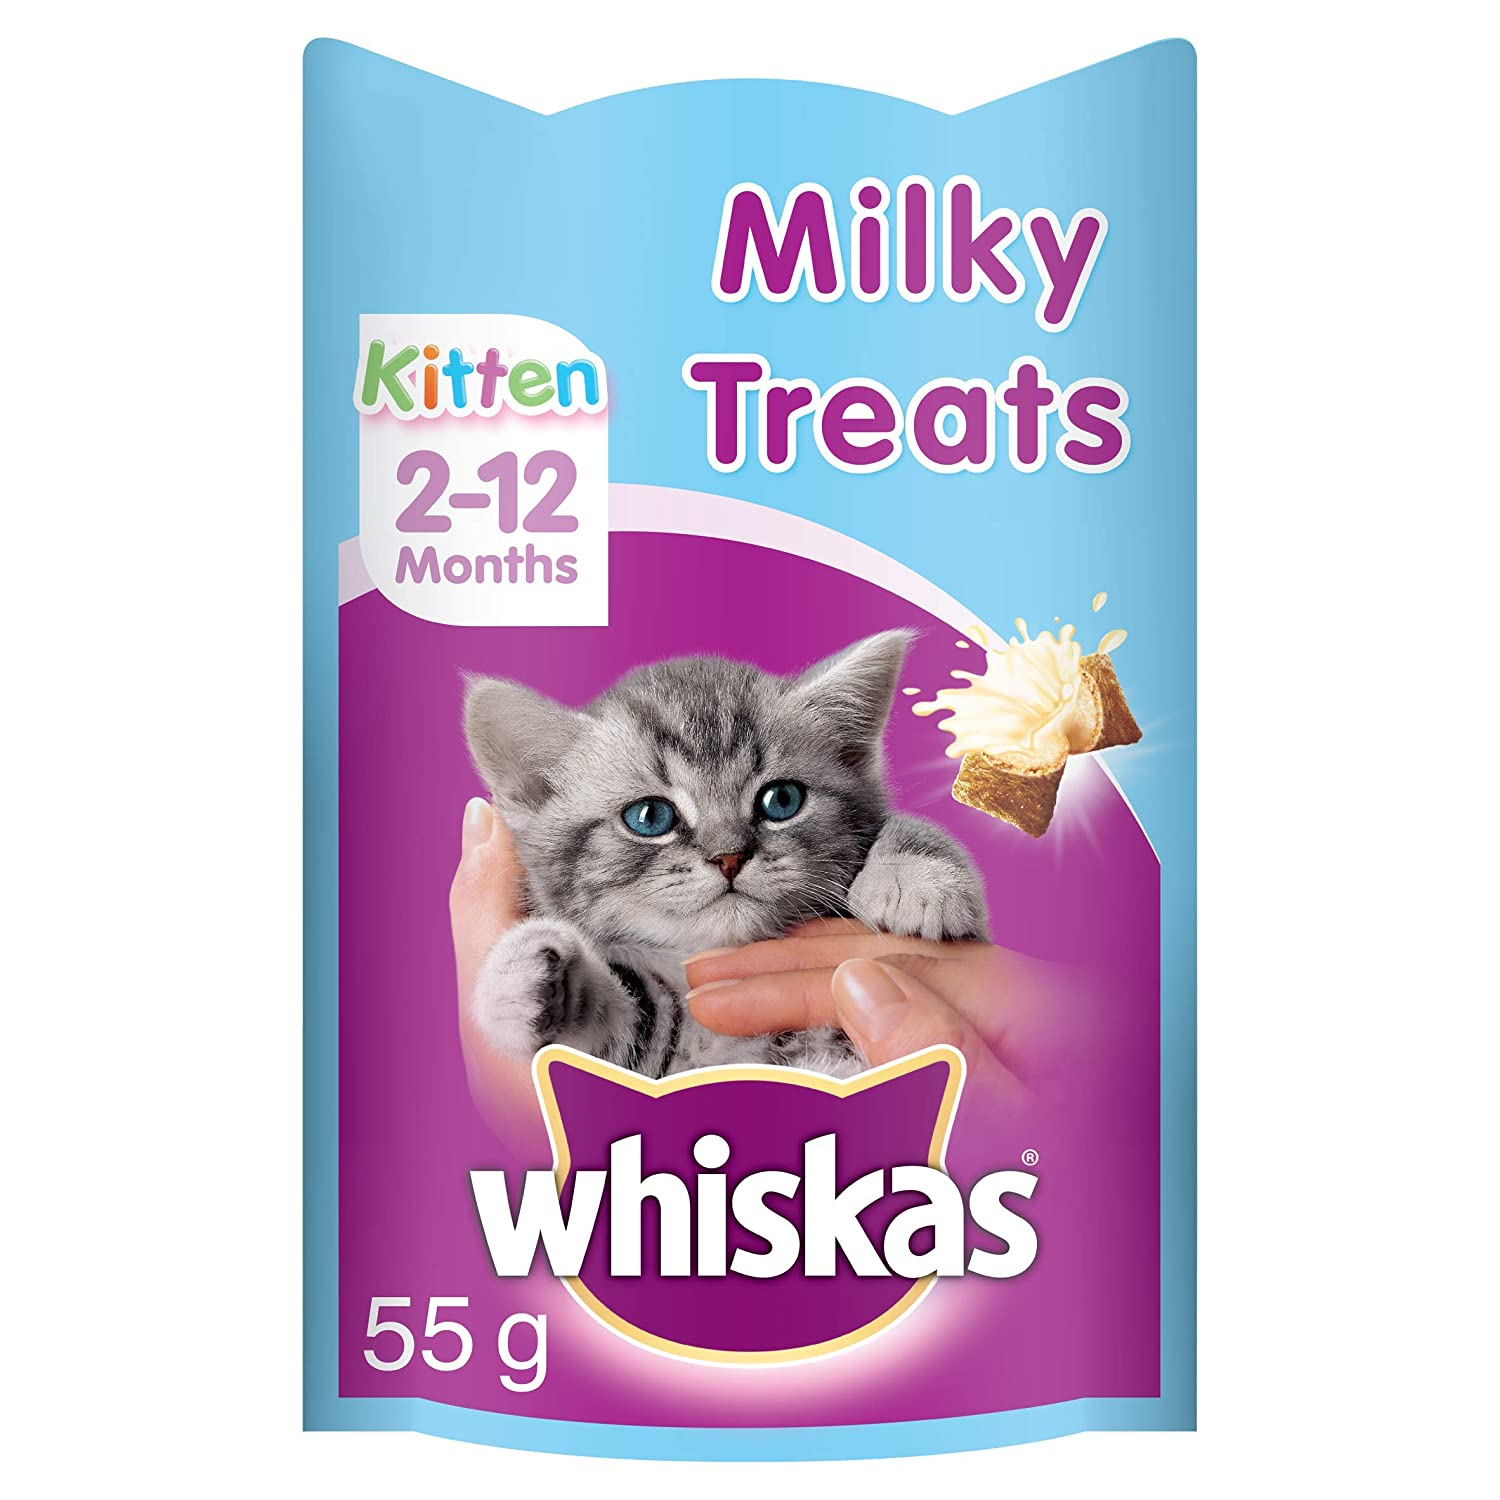 Watch How to Give a Kitten Treats video